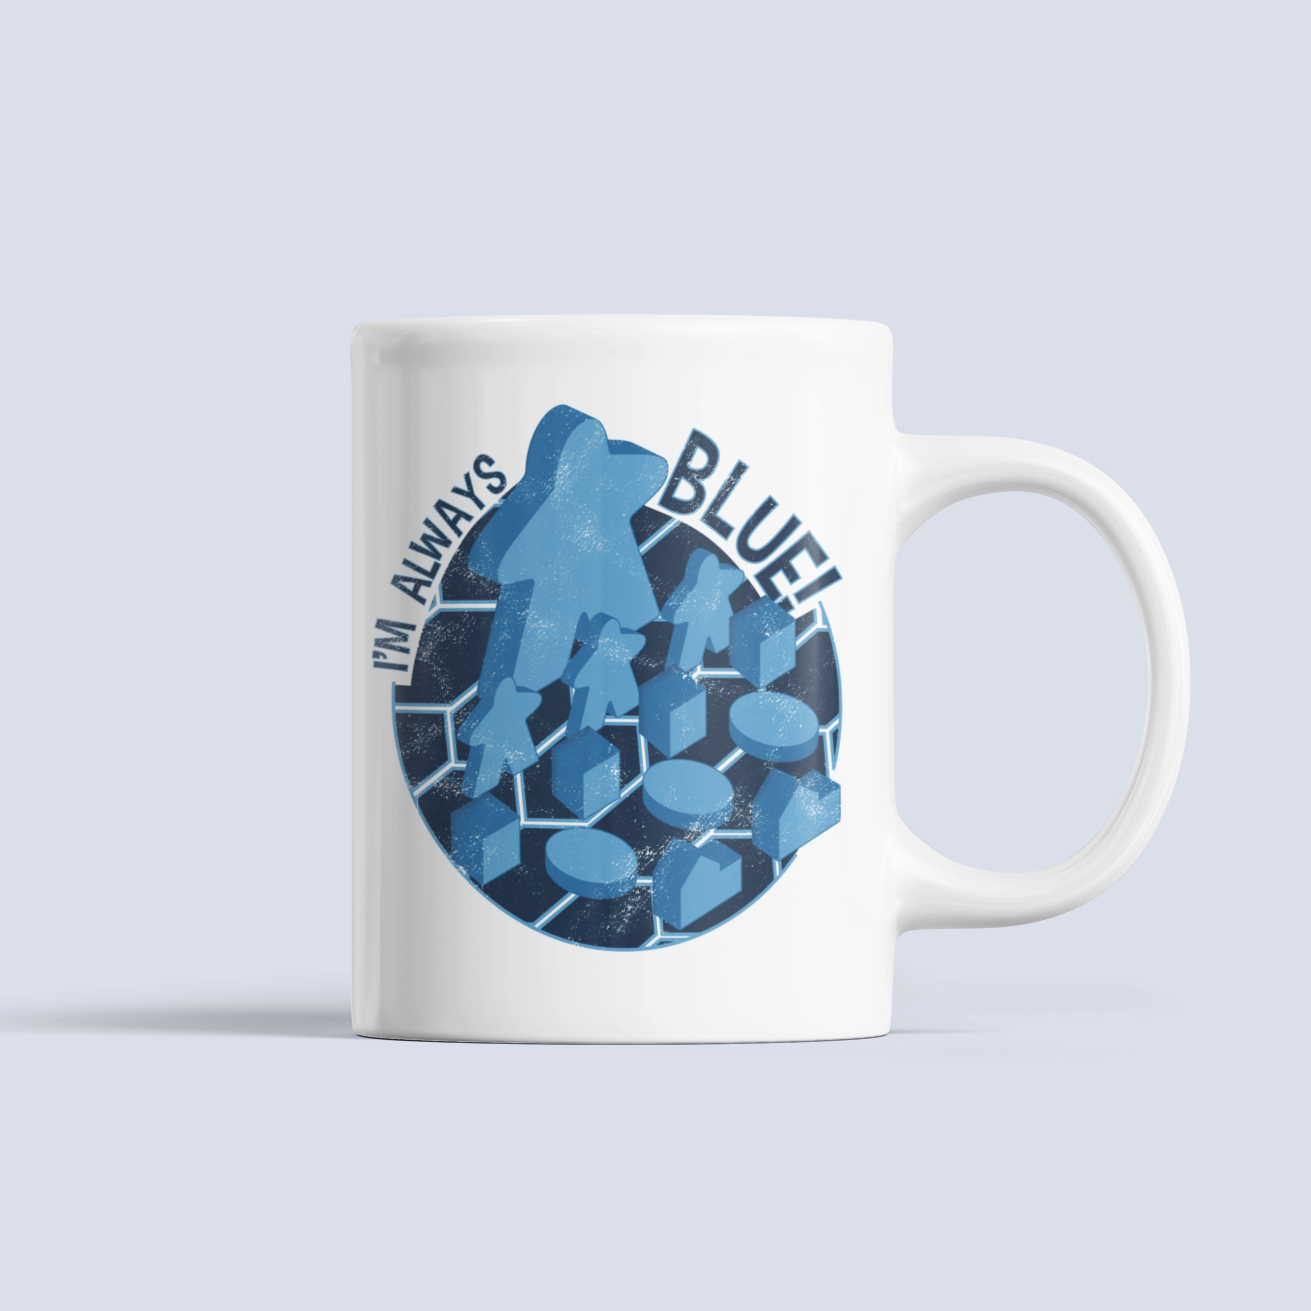 Blue Meeple Board Game Ceramic Mug